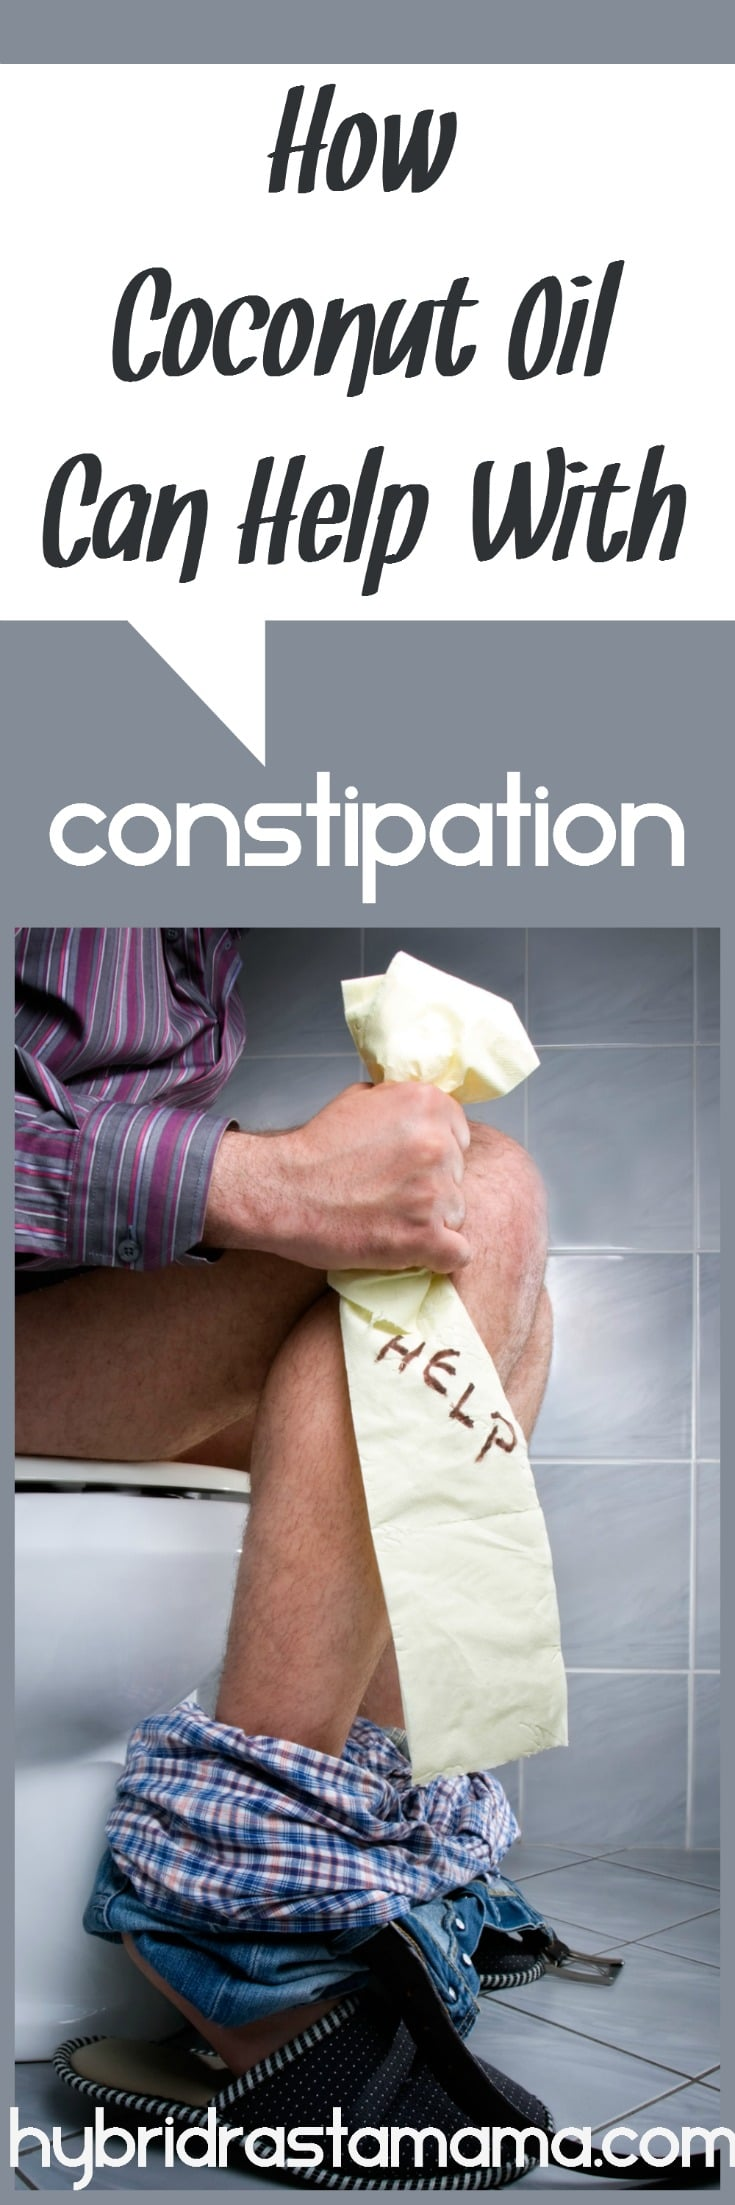 Backups happen. Need a little something to get things moving? Good thing there is coconut oil for constipation! Learn how it helps in this post from HybridRastaMama.com.